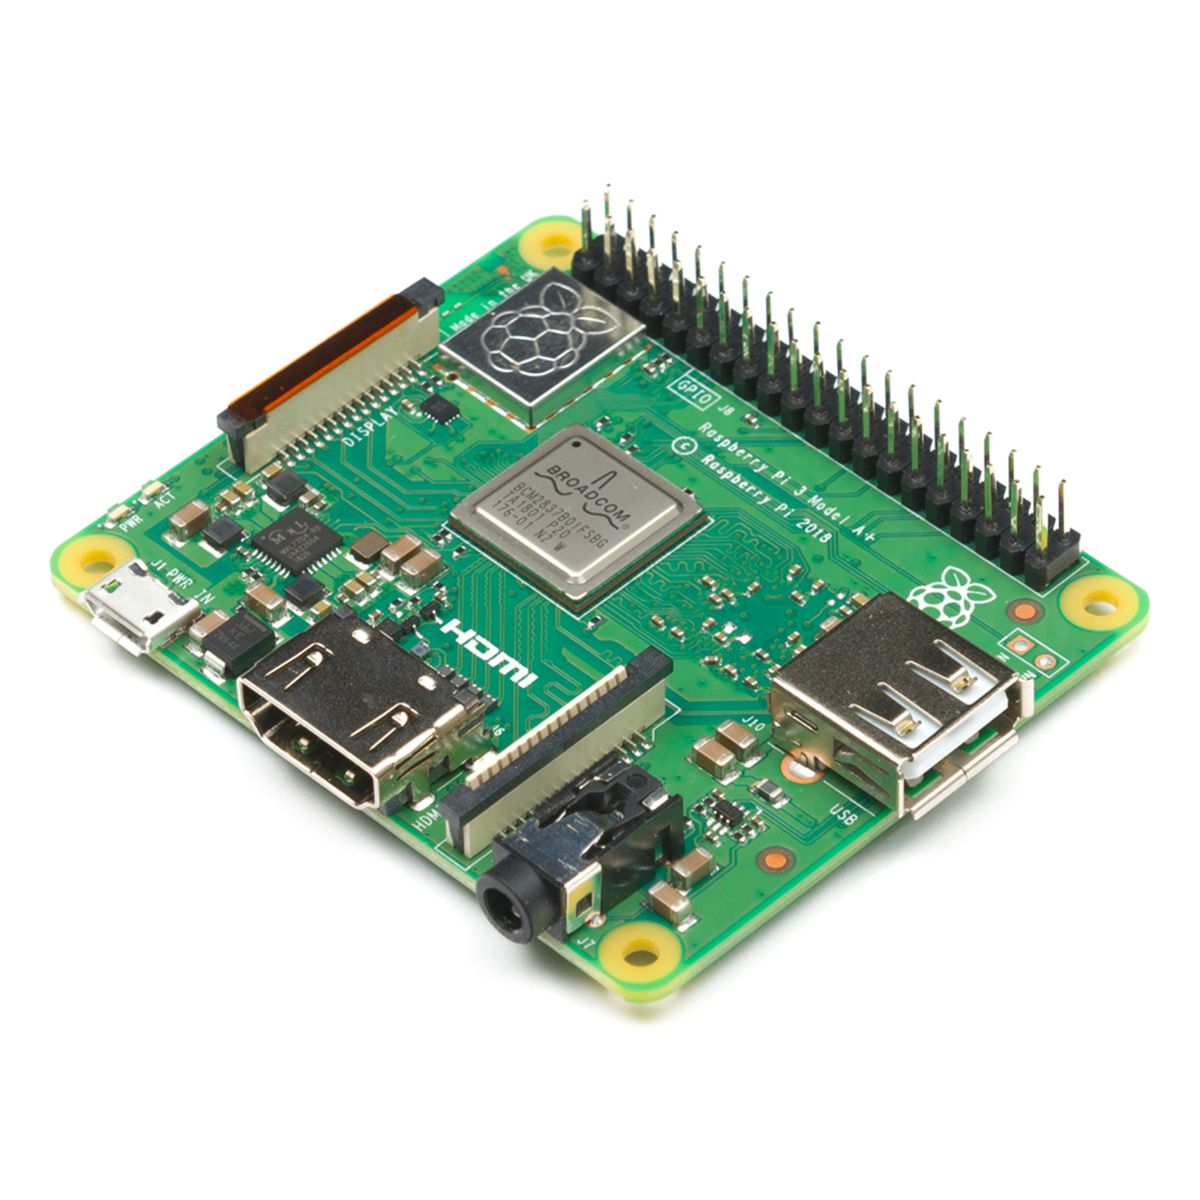 New Raspberry Pi 3 Model A+ - Genuine, AU Stock - Server On The Move